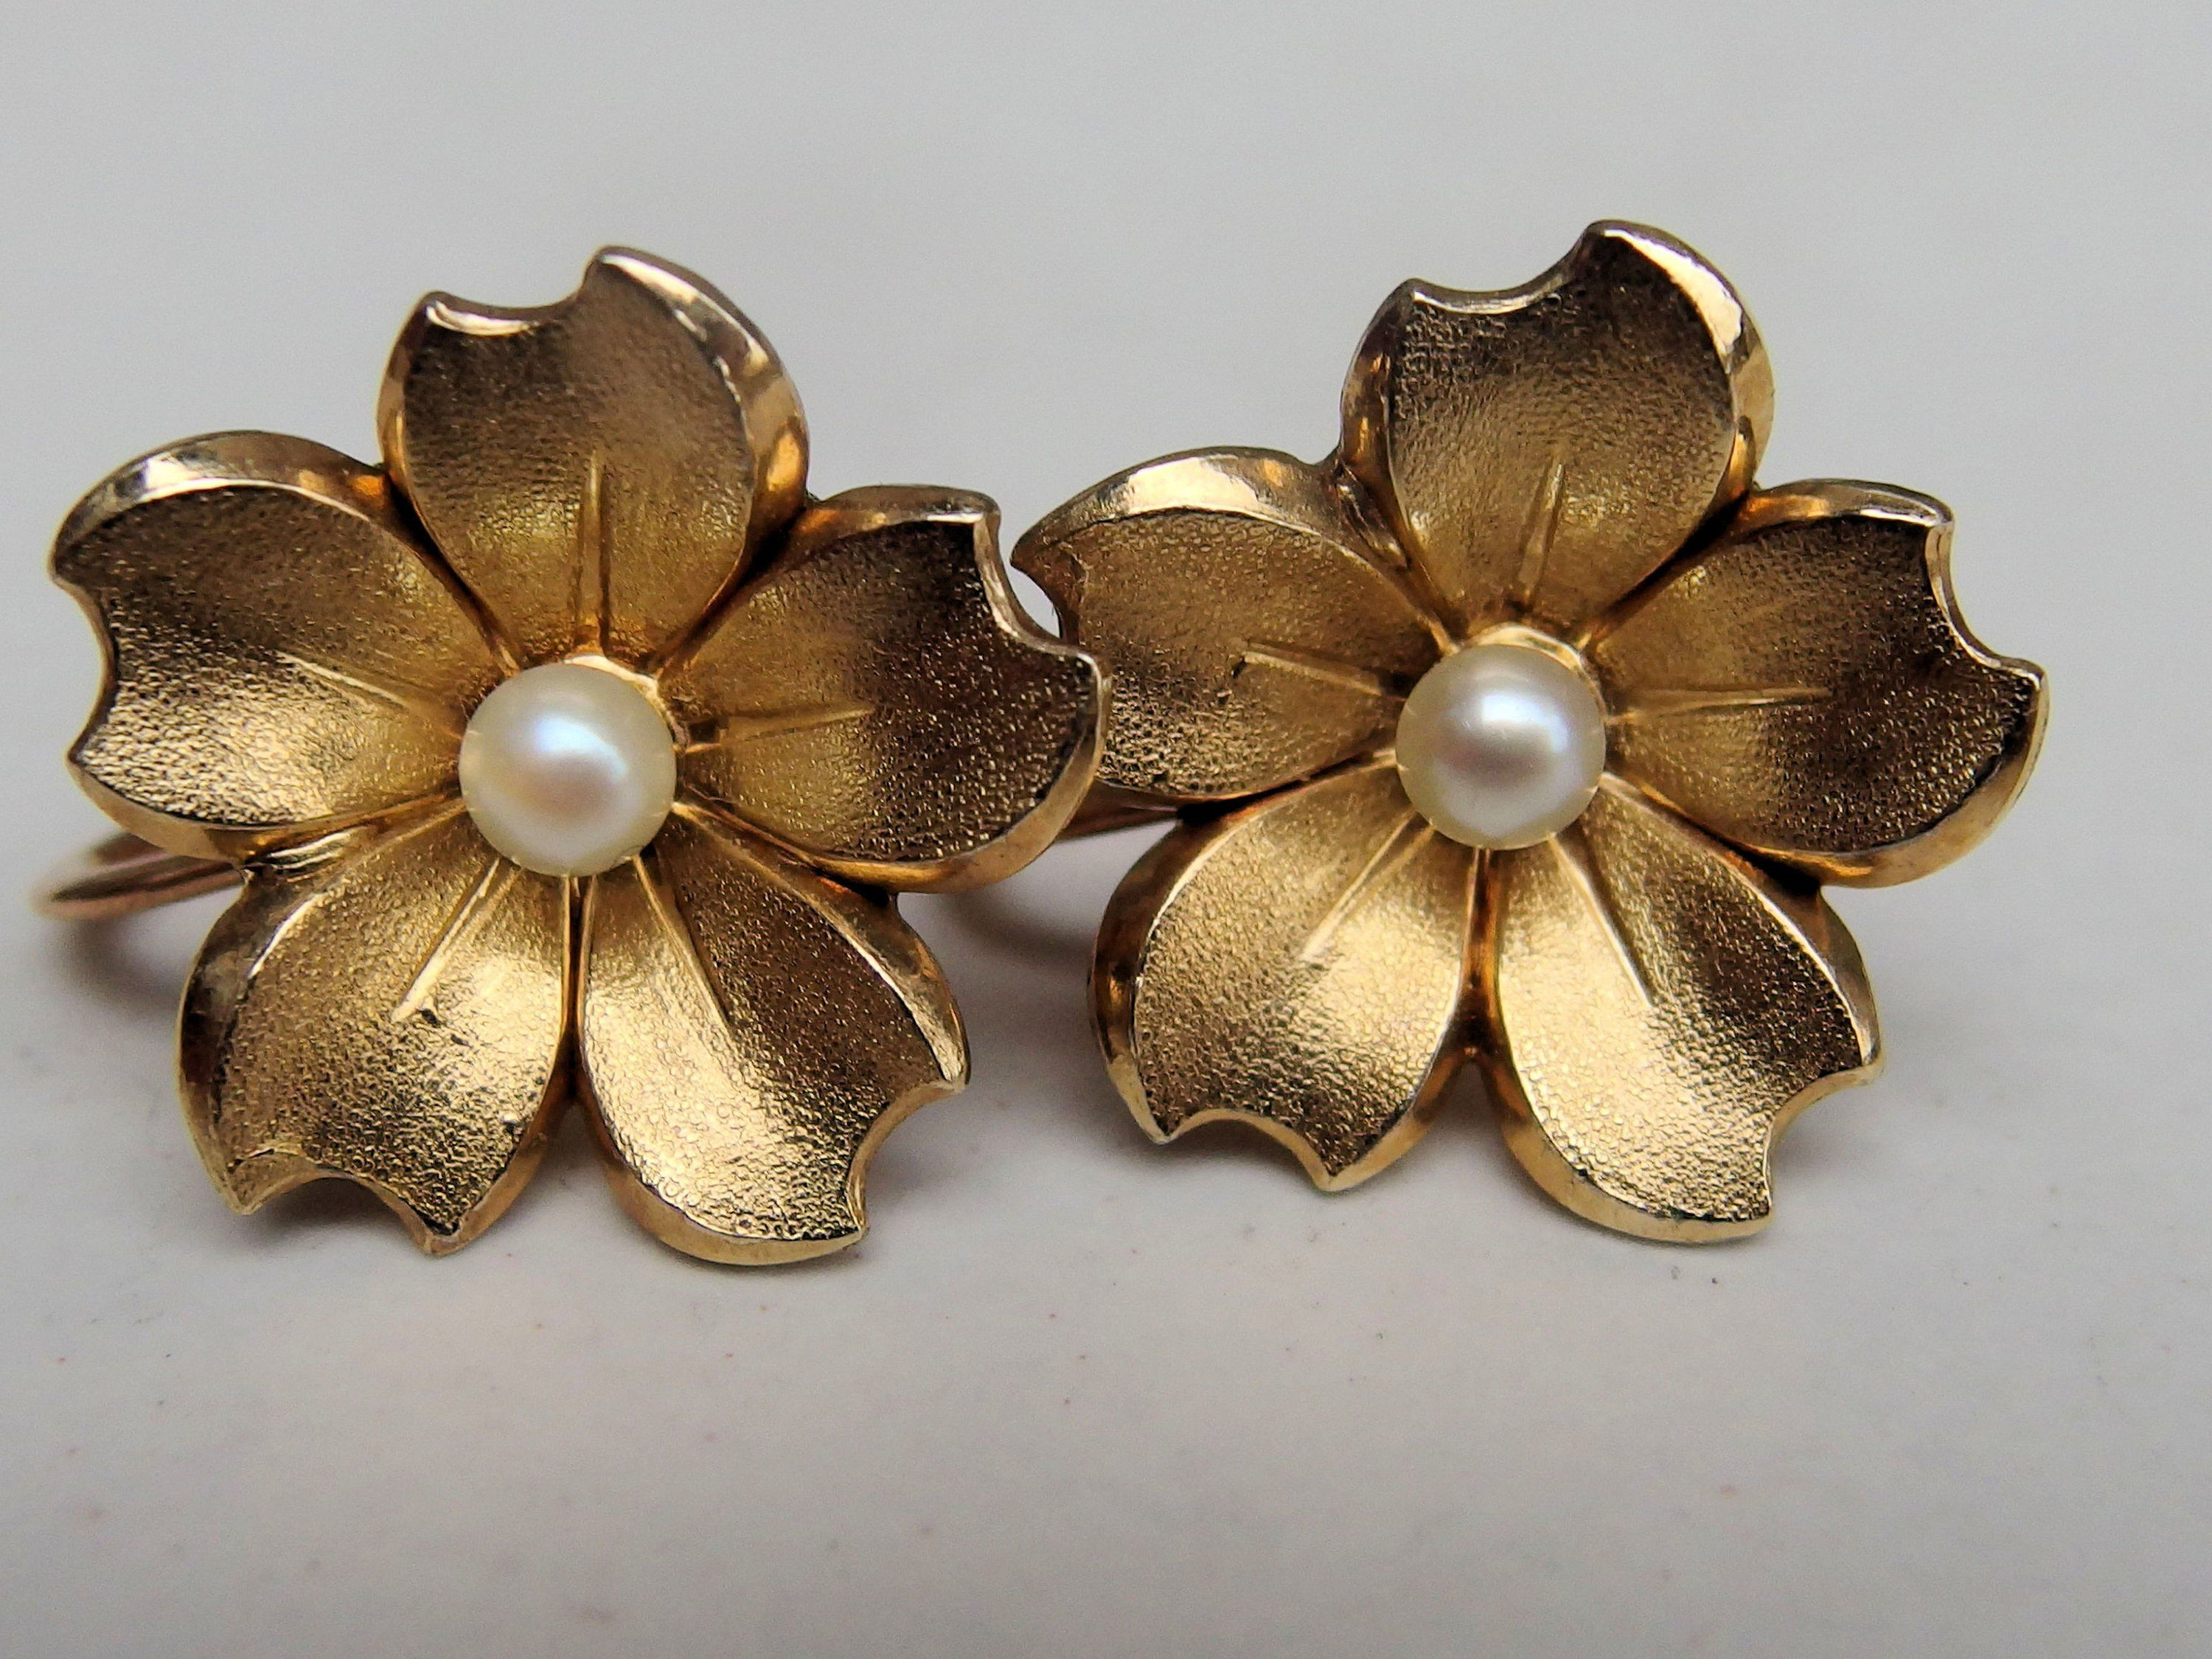 Lovely Shell Shaped Brooch with Matching Earrings